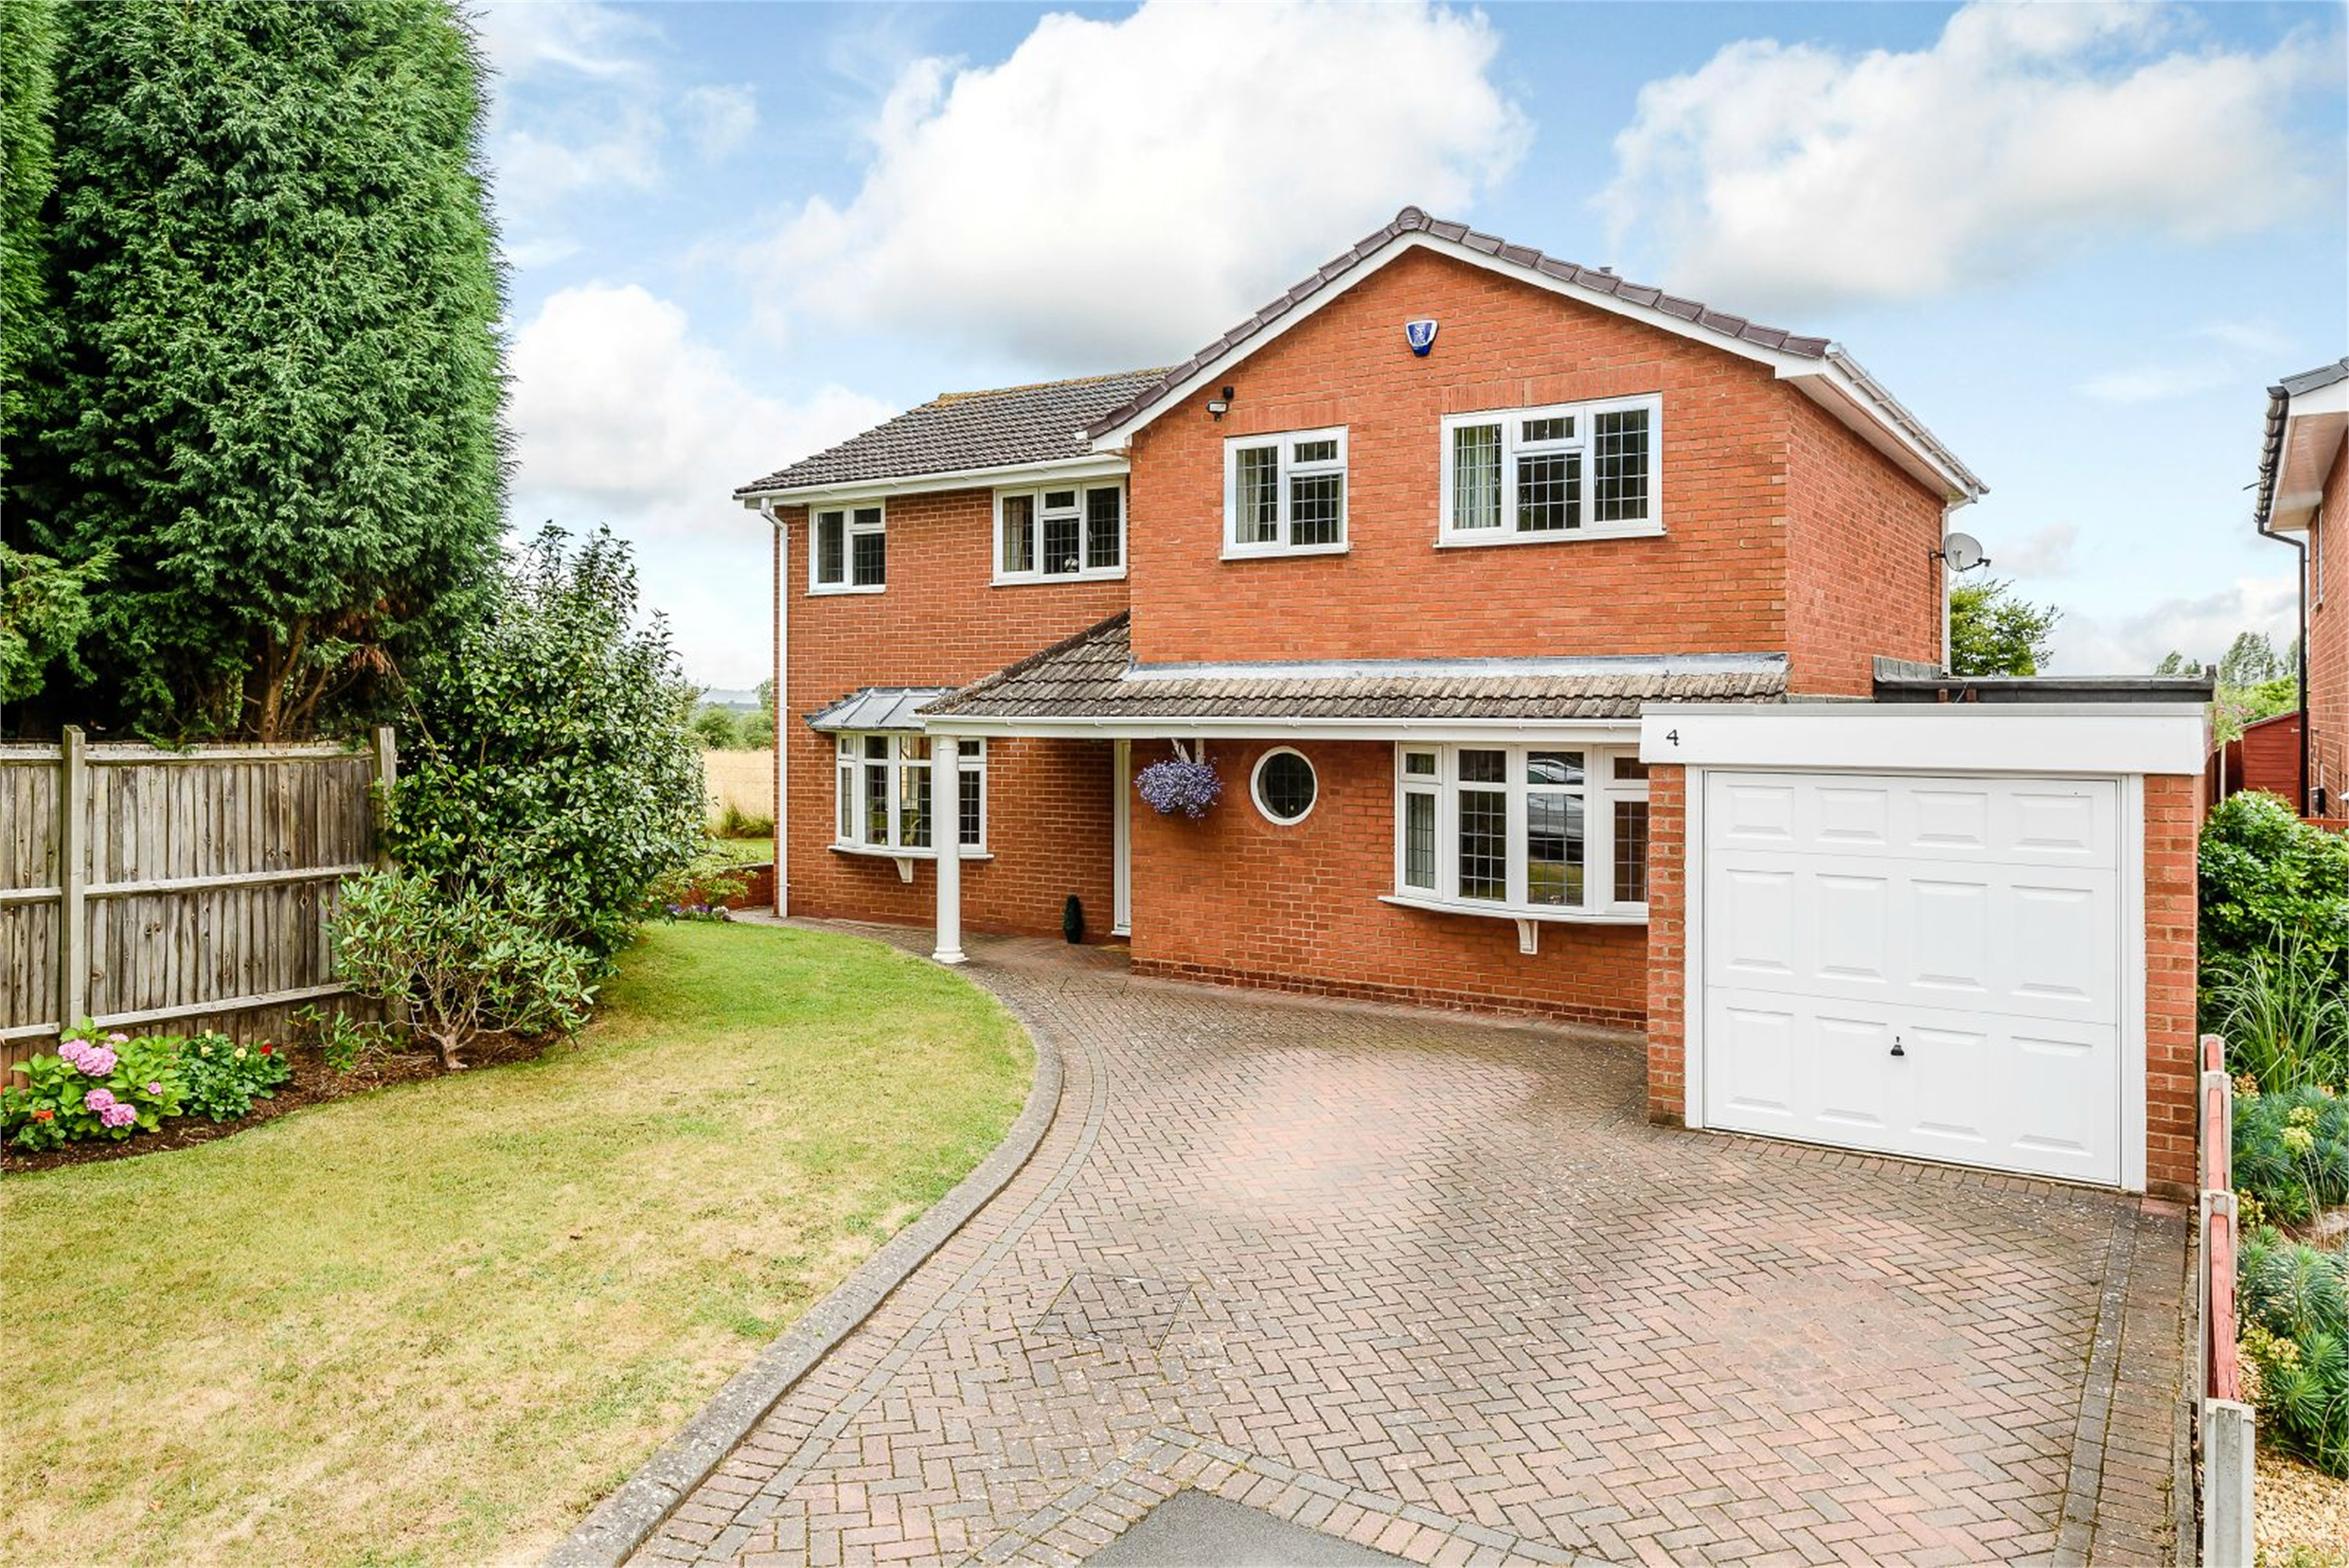 5 Bedrooms Detached House for sale in 4 Ashdene Close, Hartlebury, Kidderminster, Worcestershire, DY11